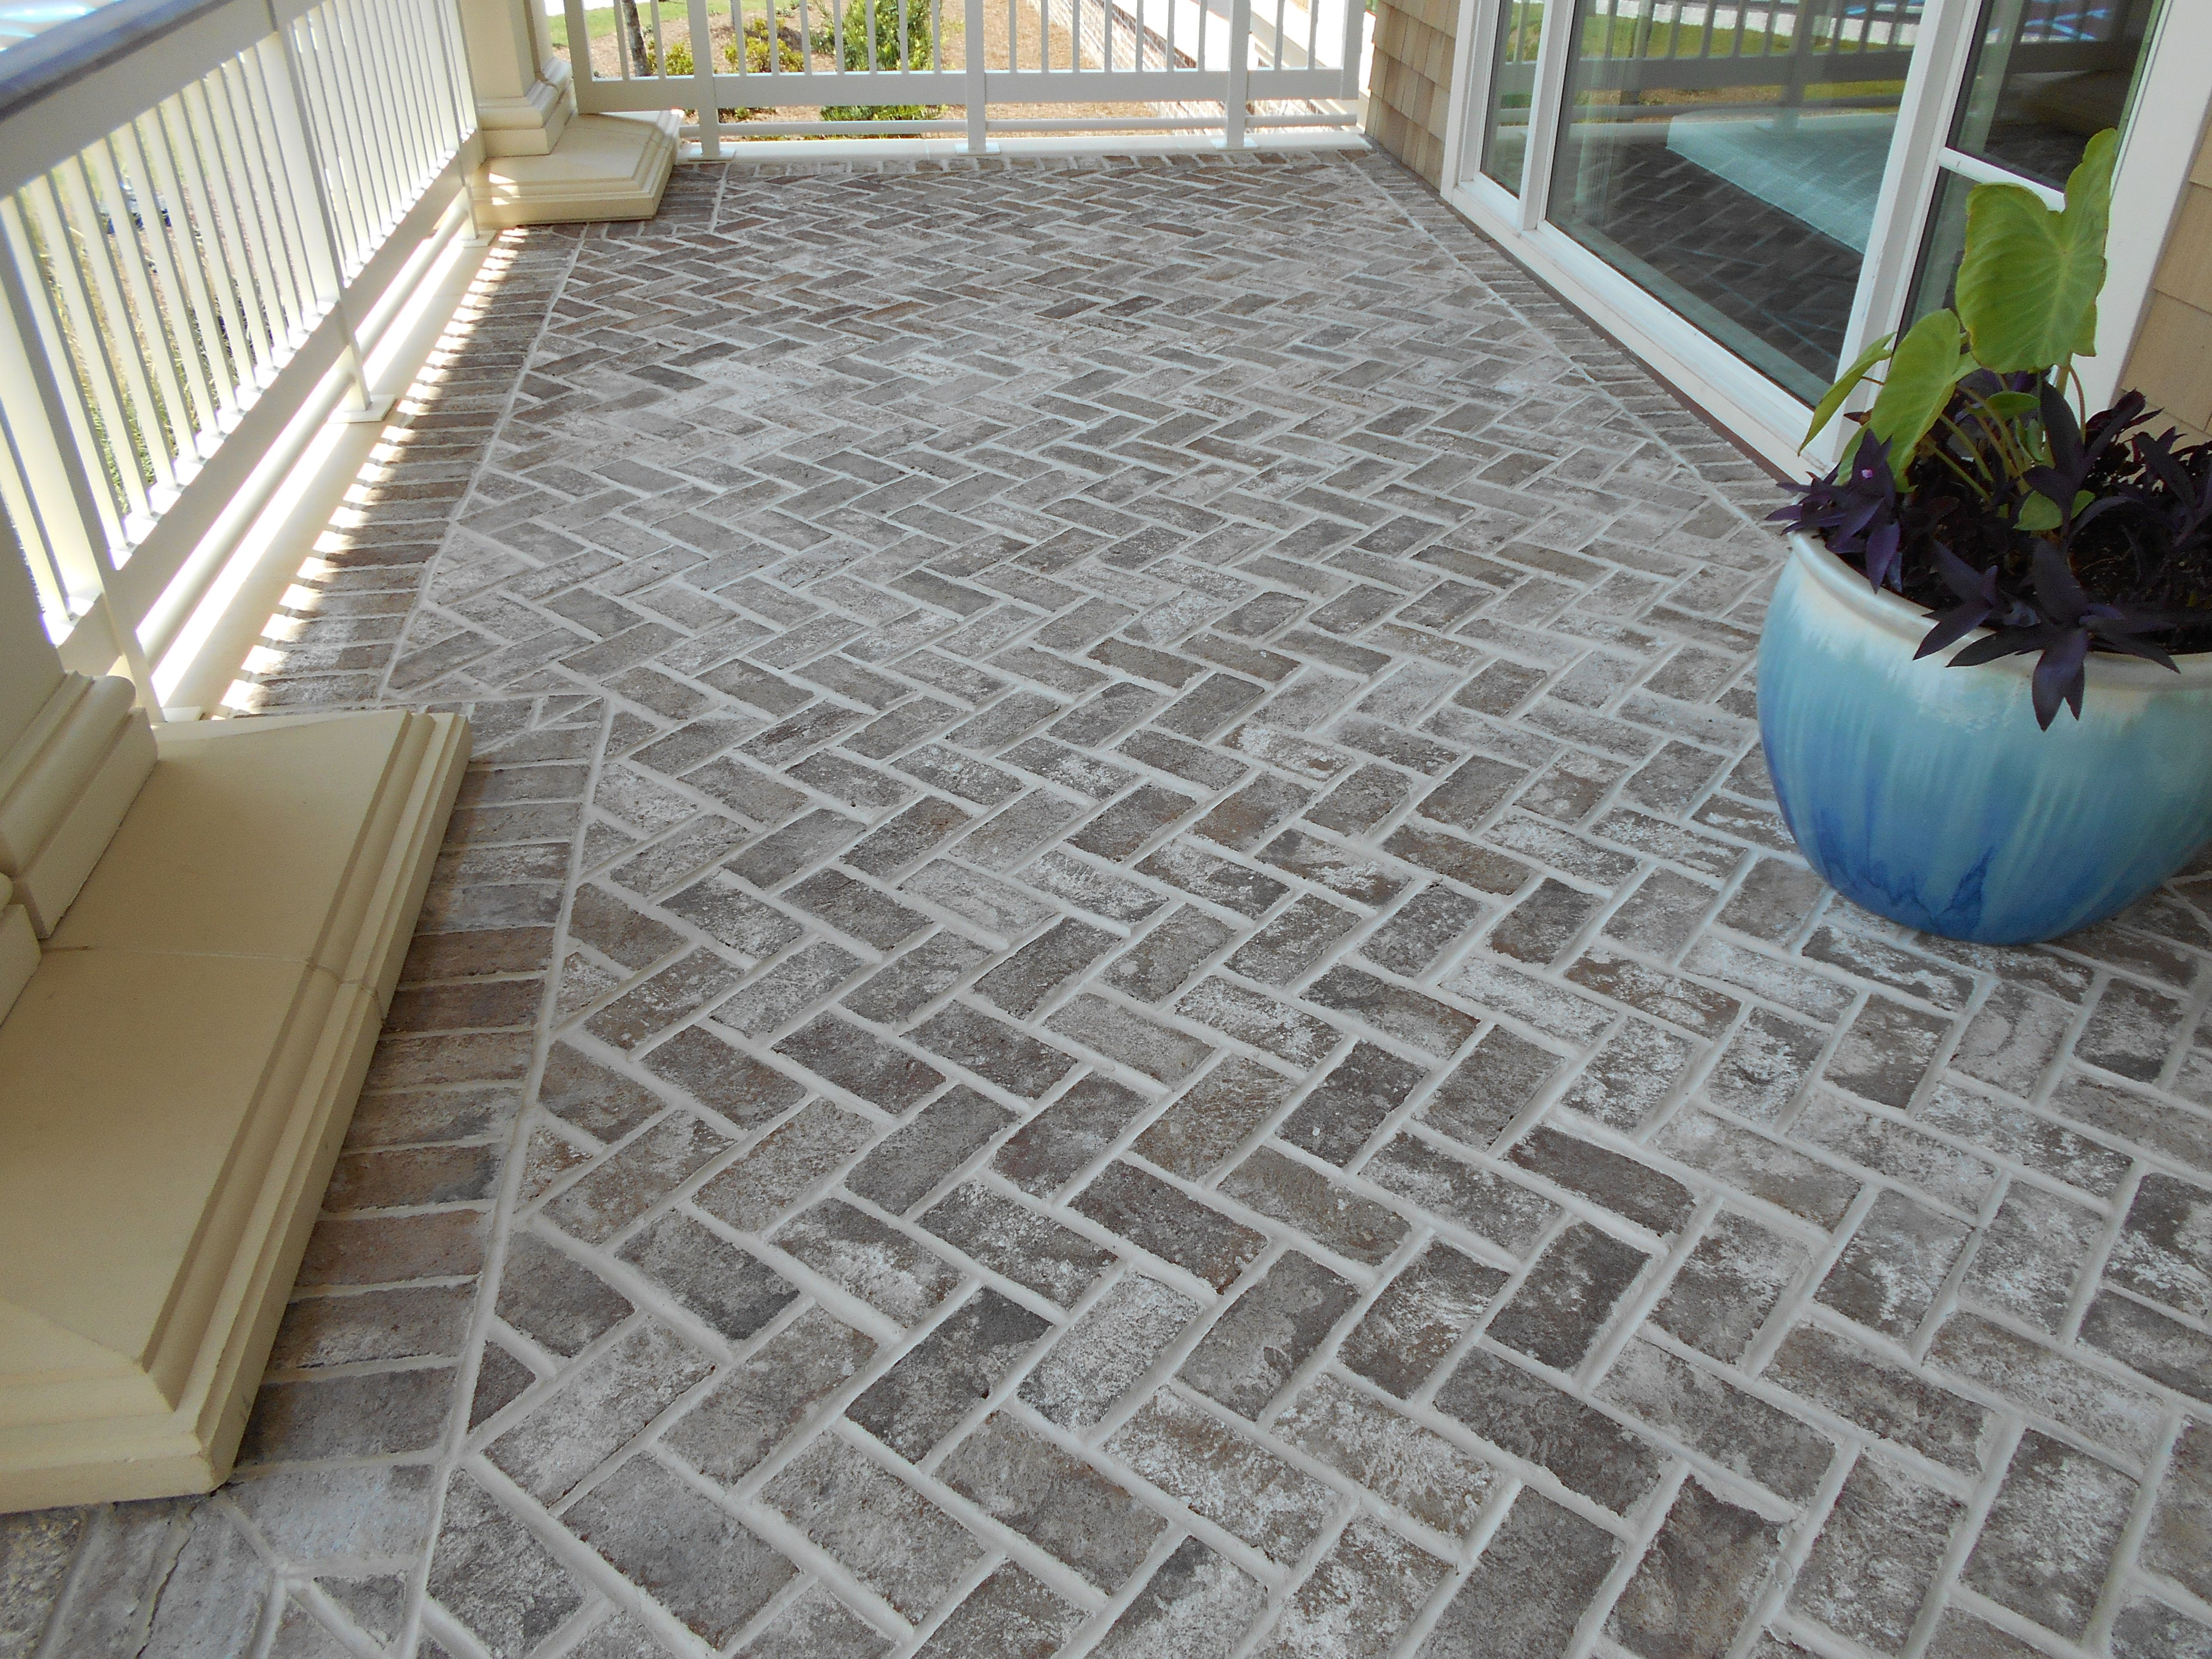 Contemporary with front steps gray brick driveway gray brick driveway - Our Normal Savannah Grey Oversize Genuine Handmade Brick Used As Pavers In A Herringbone Pattern At